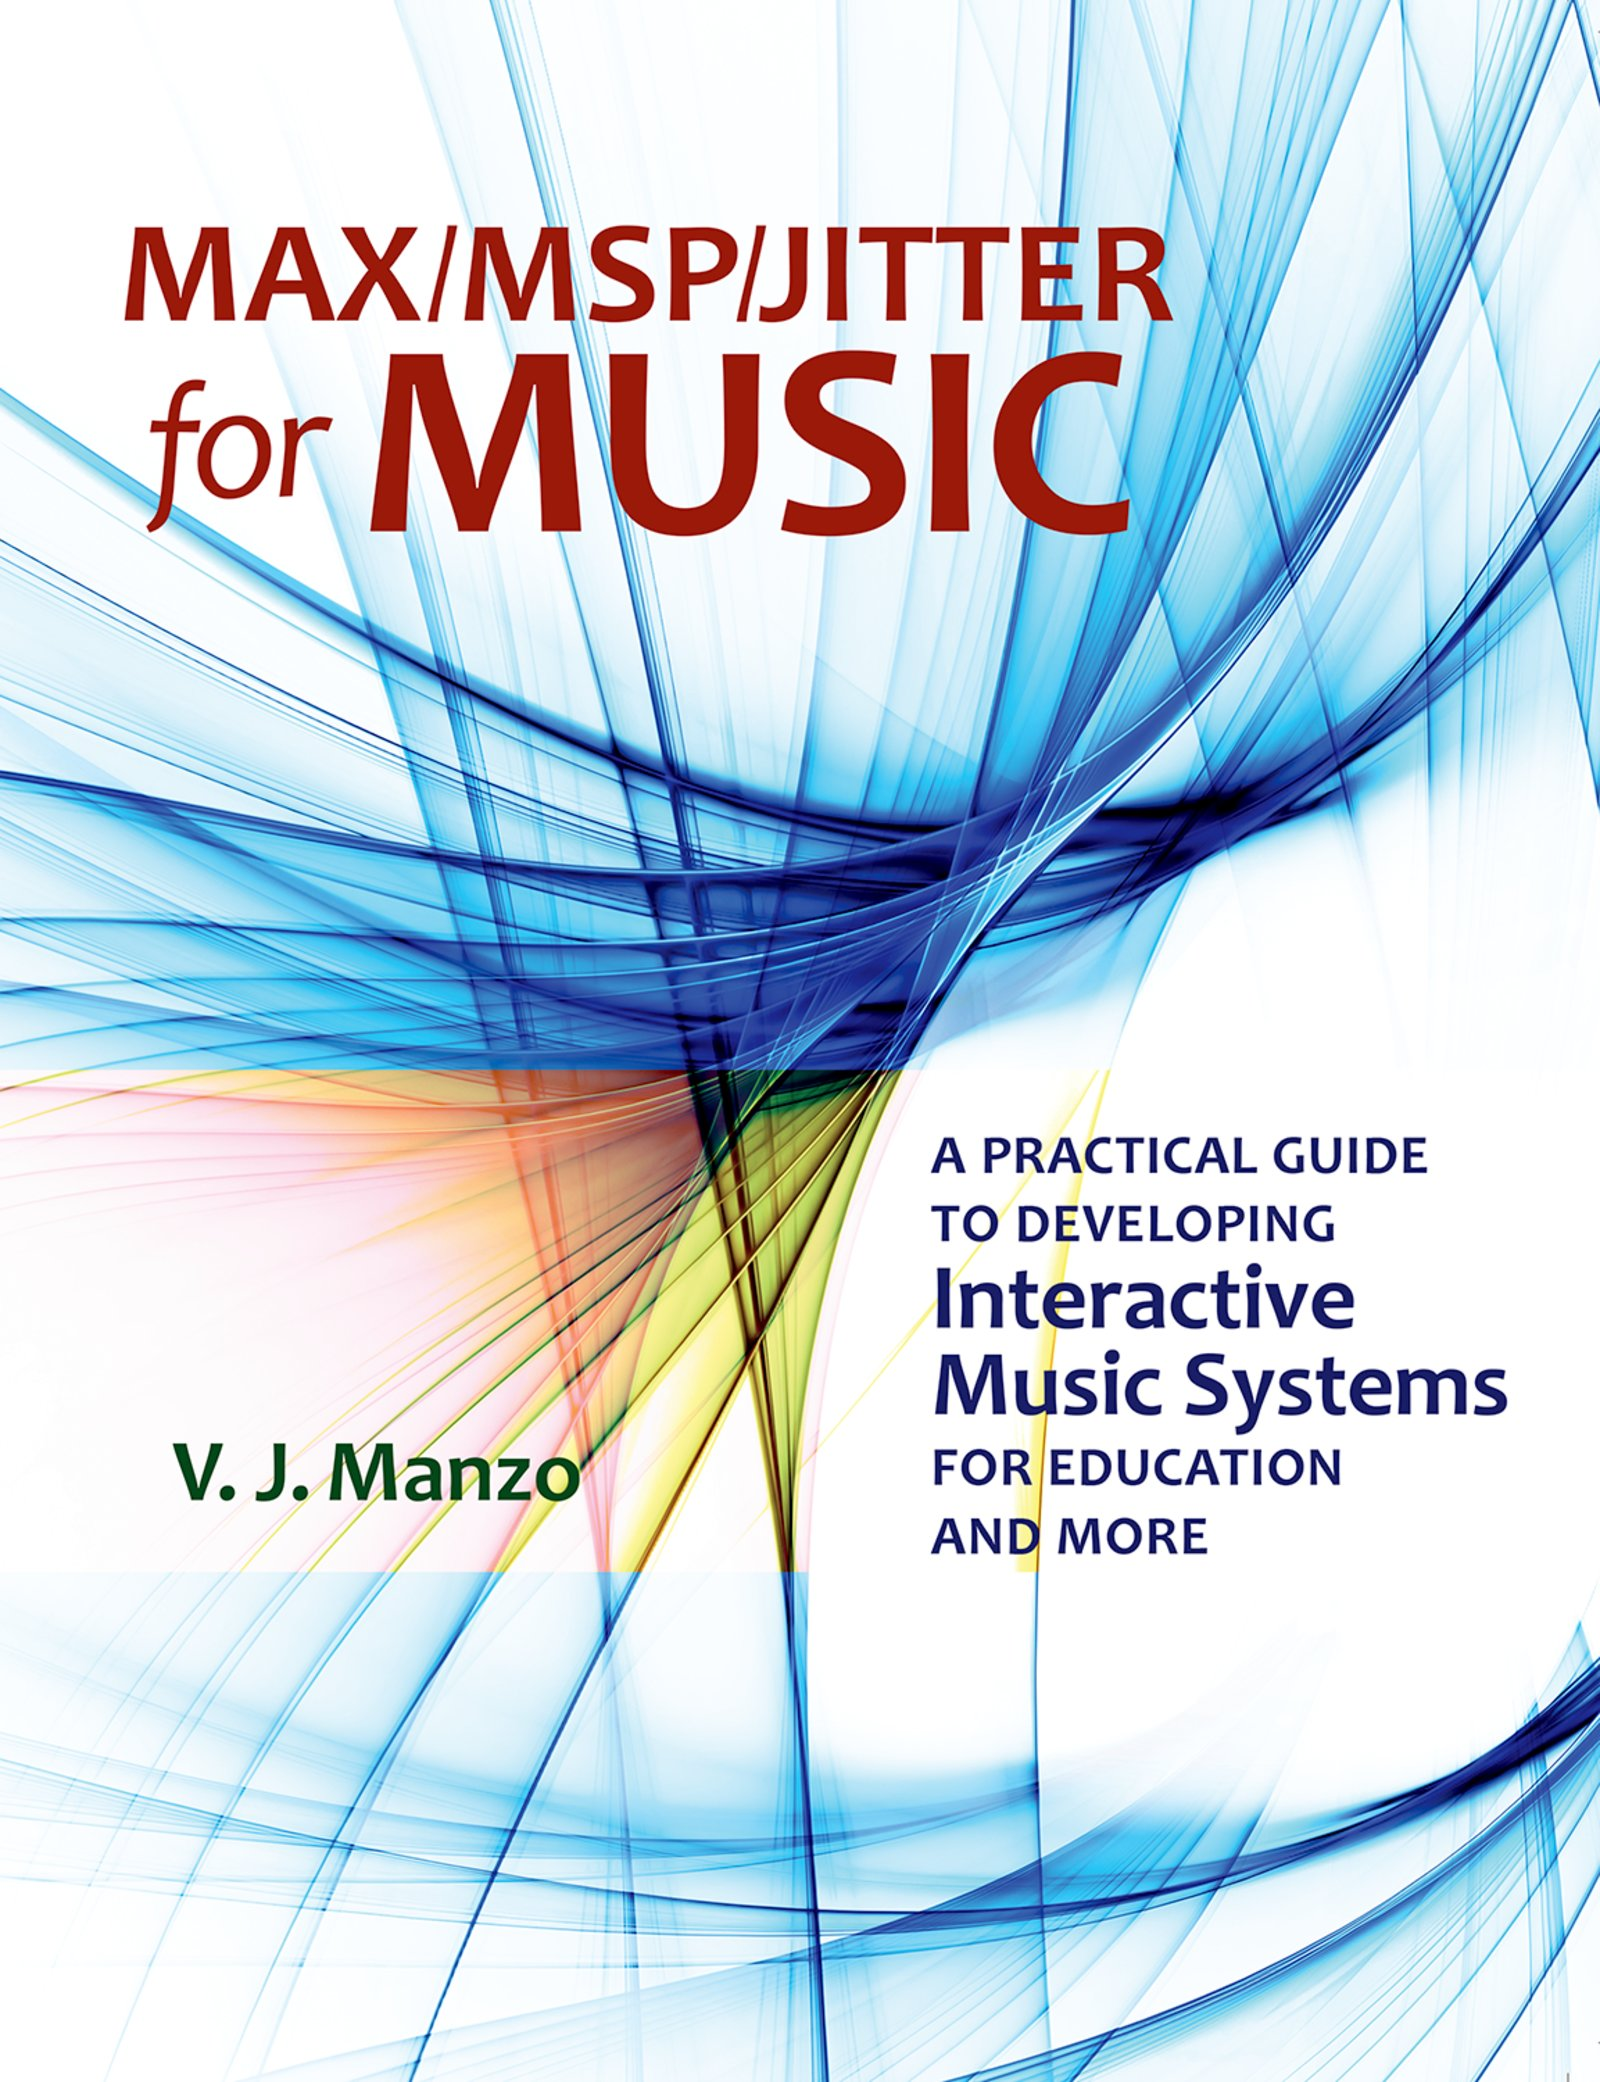 Max/MSP/Jitter for MusicA Practical Guide to Developing Interactive Music Systems for Education and More